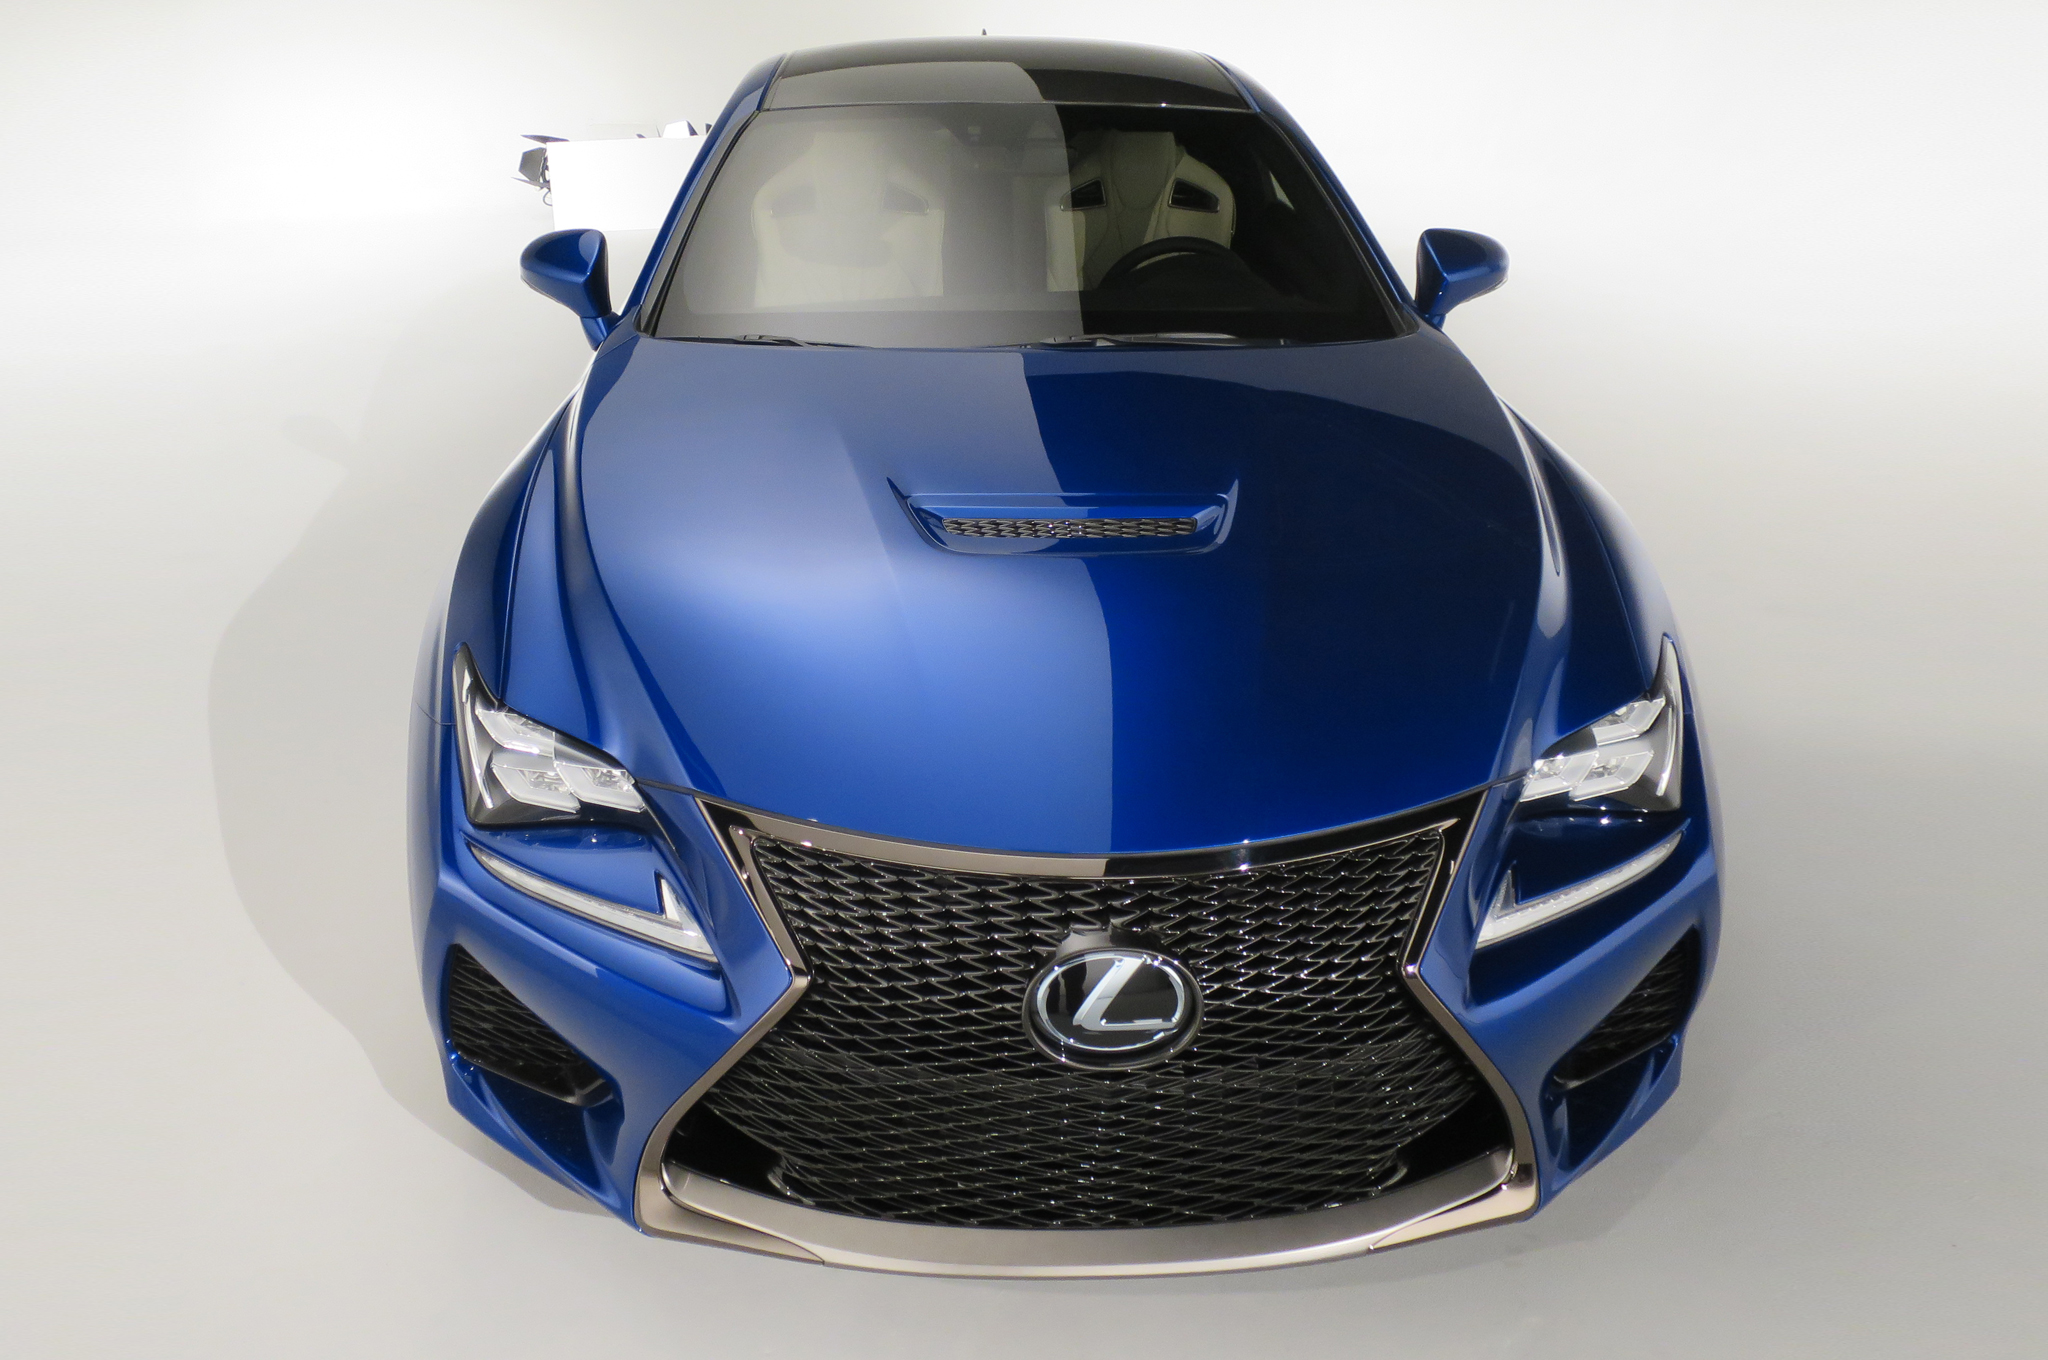 2015 lexus rc f styles features highlights. Black Bedroom Furniture Sets. Home Design Ideas